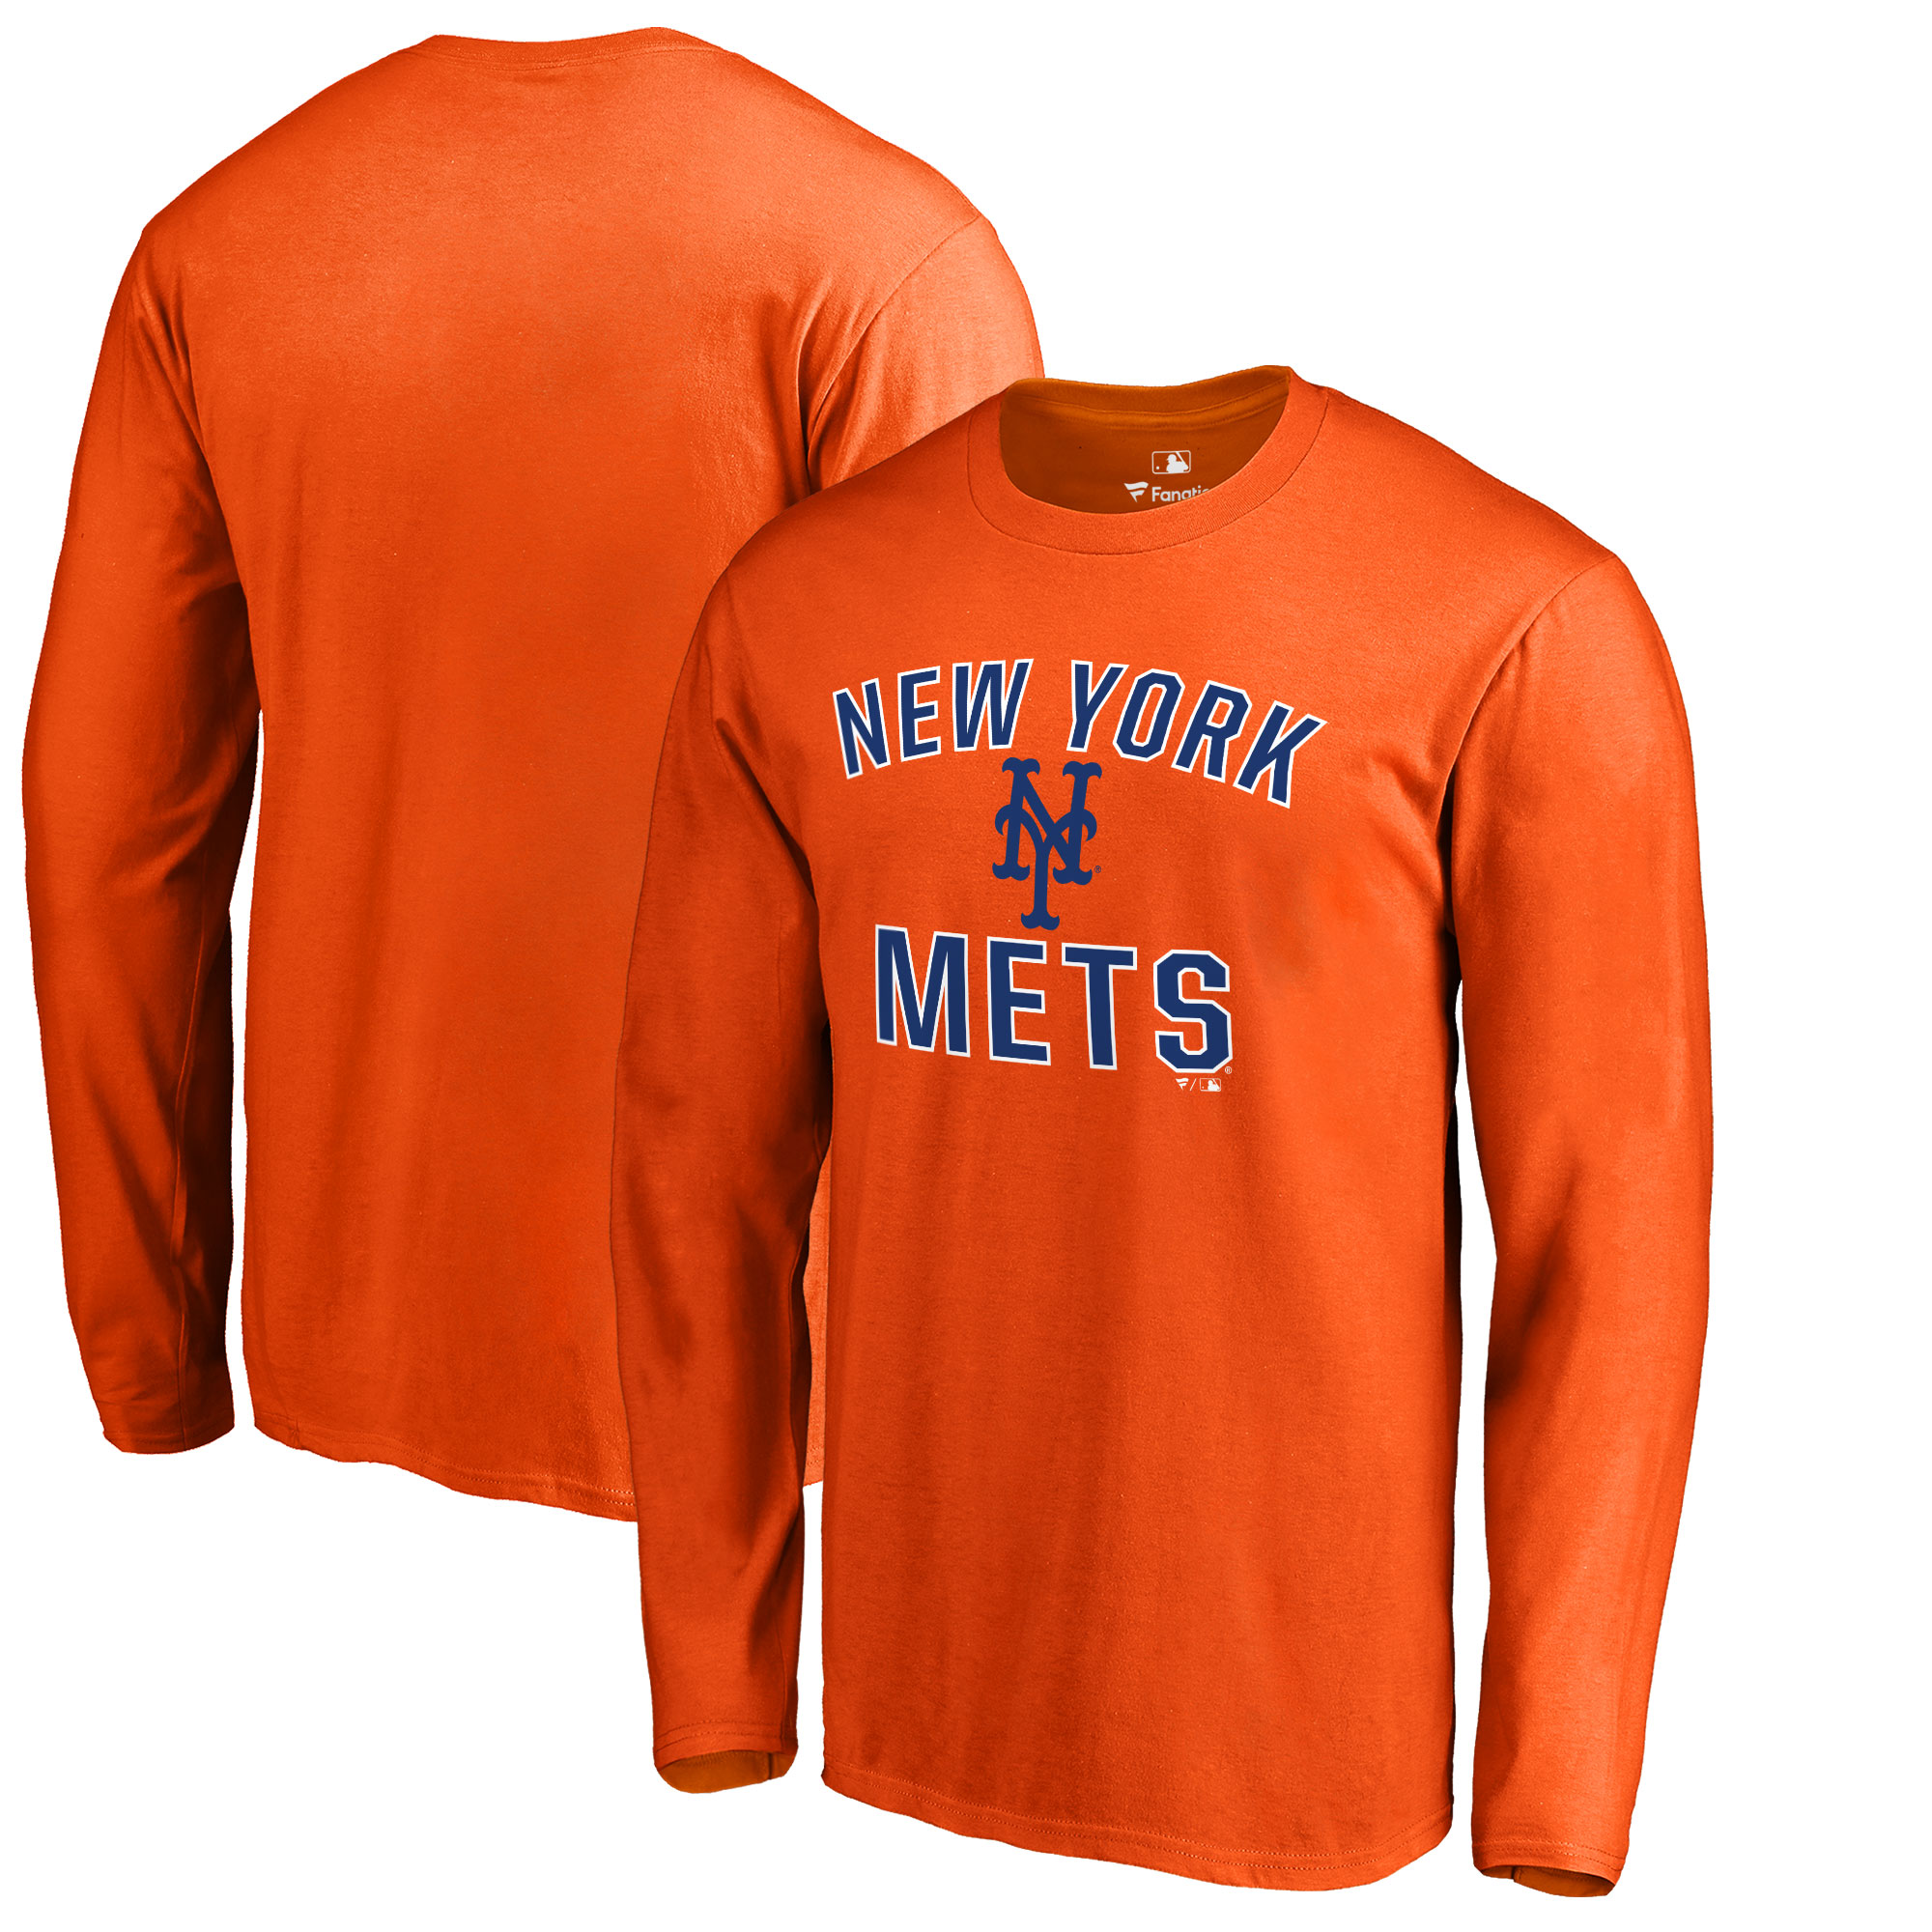 New York Mets Victory Arch Long Sleeve T-Shirt - Orange